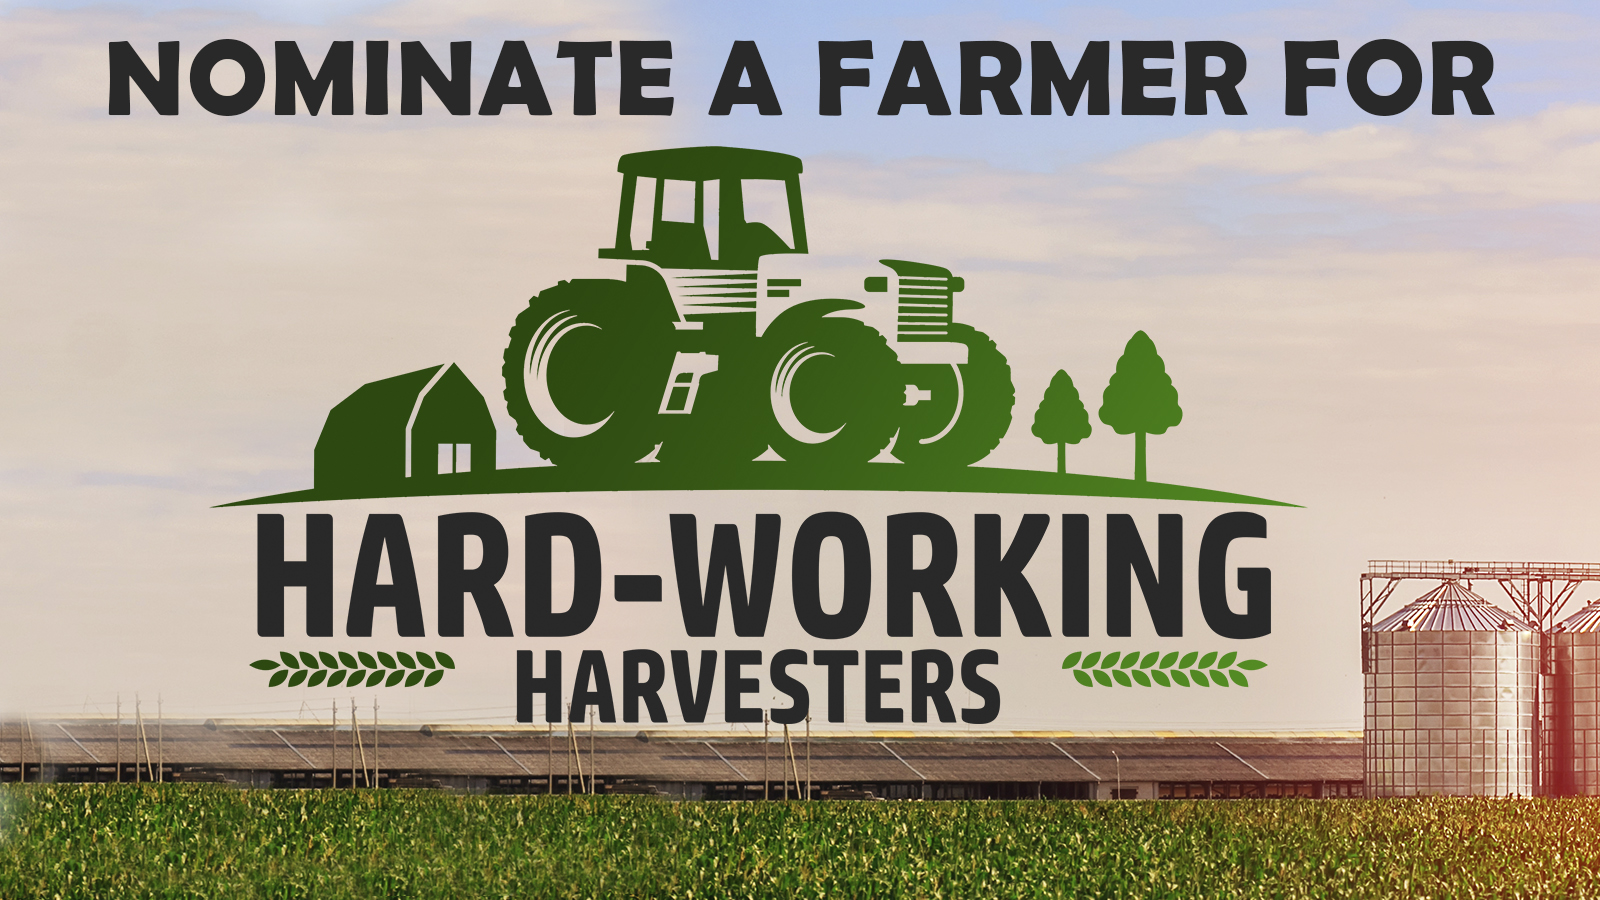 Hardworking Harvester_1528129016762.jpg.jpg